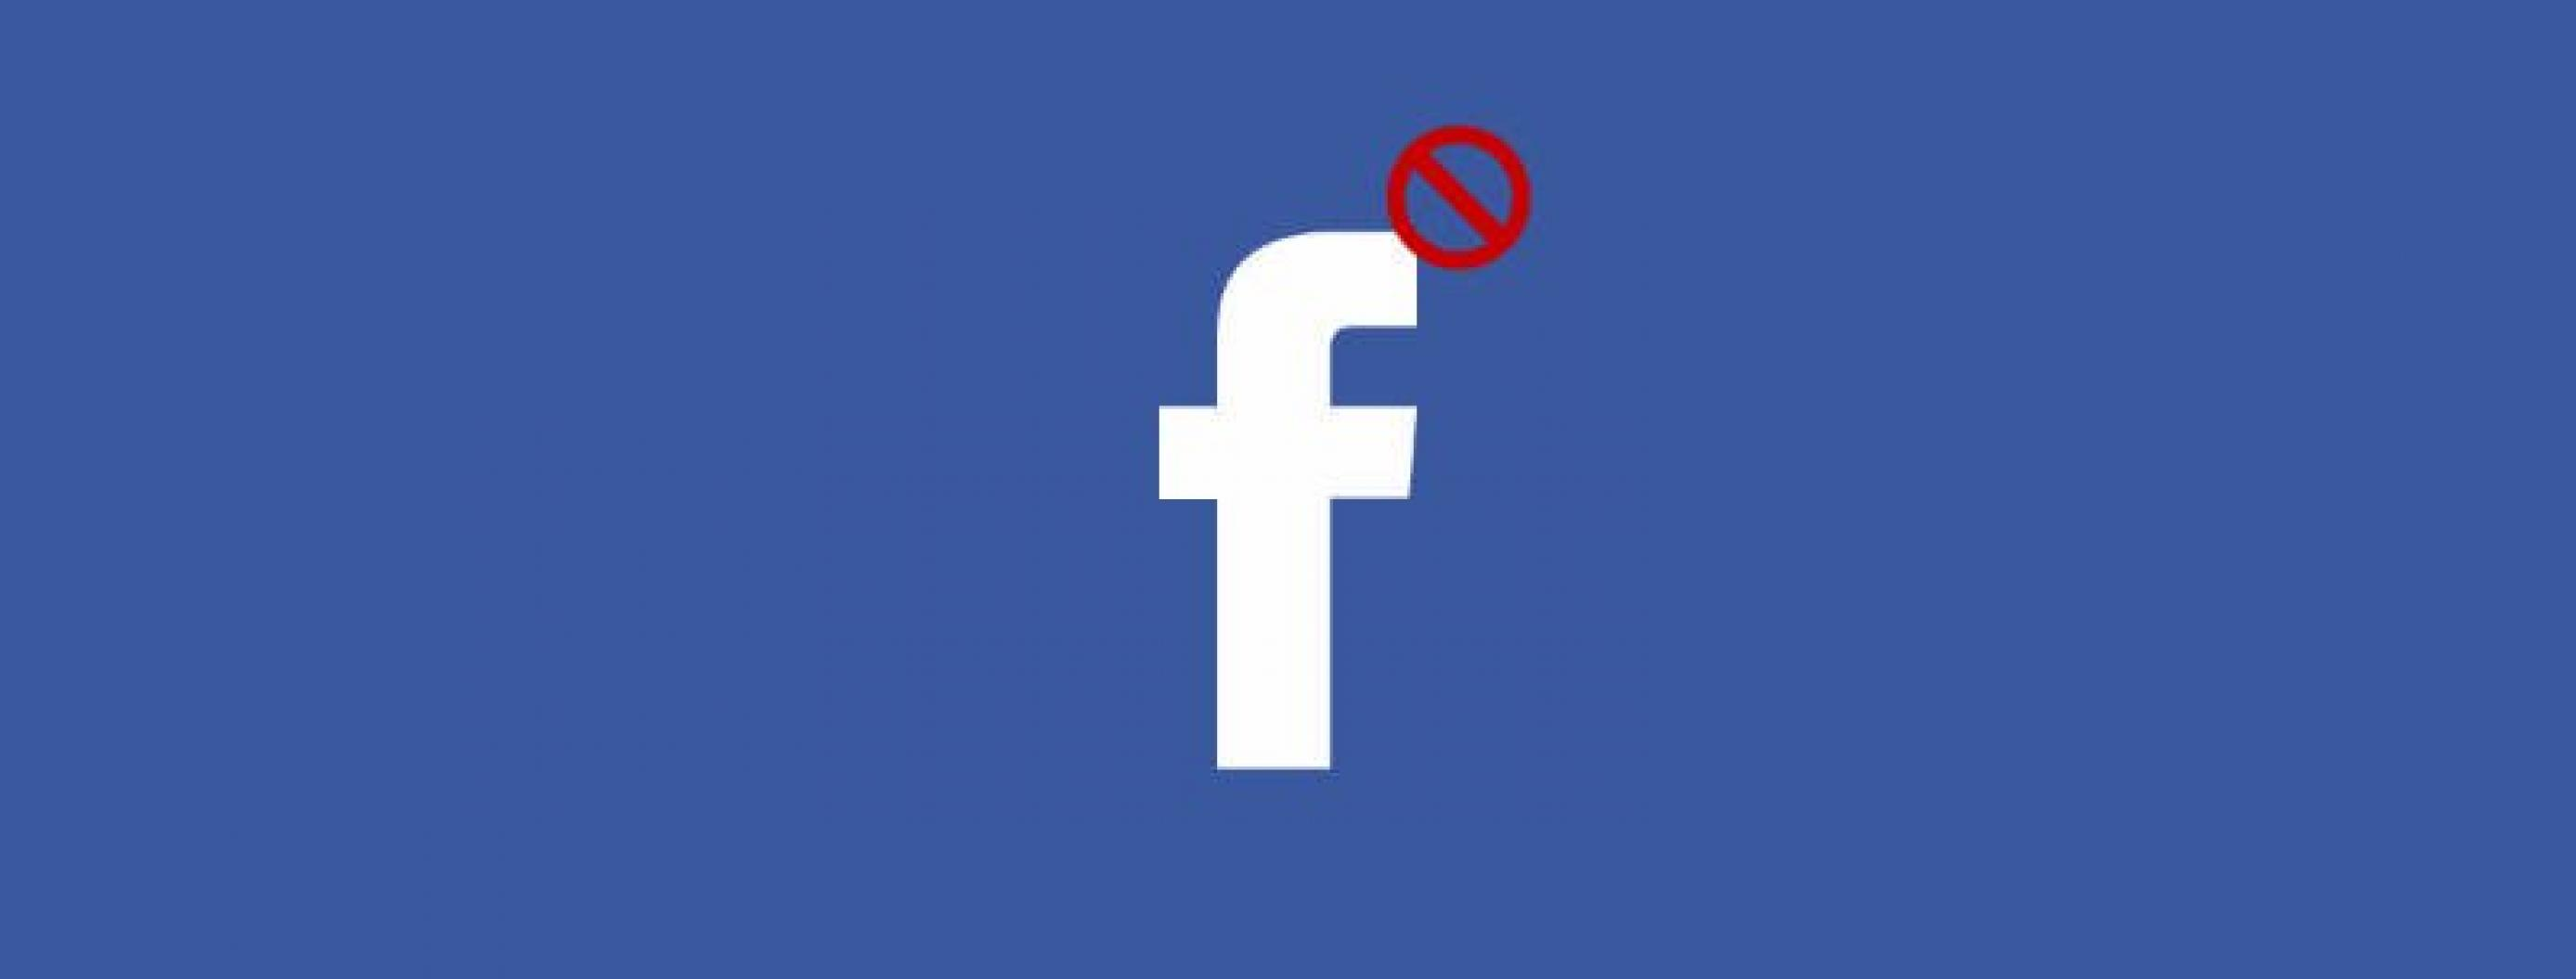 What If You Delete Facebook Today?